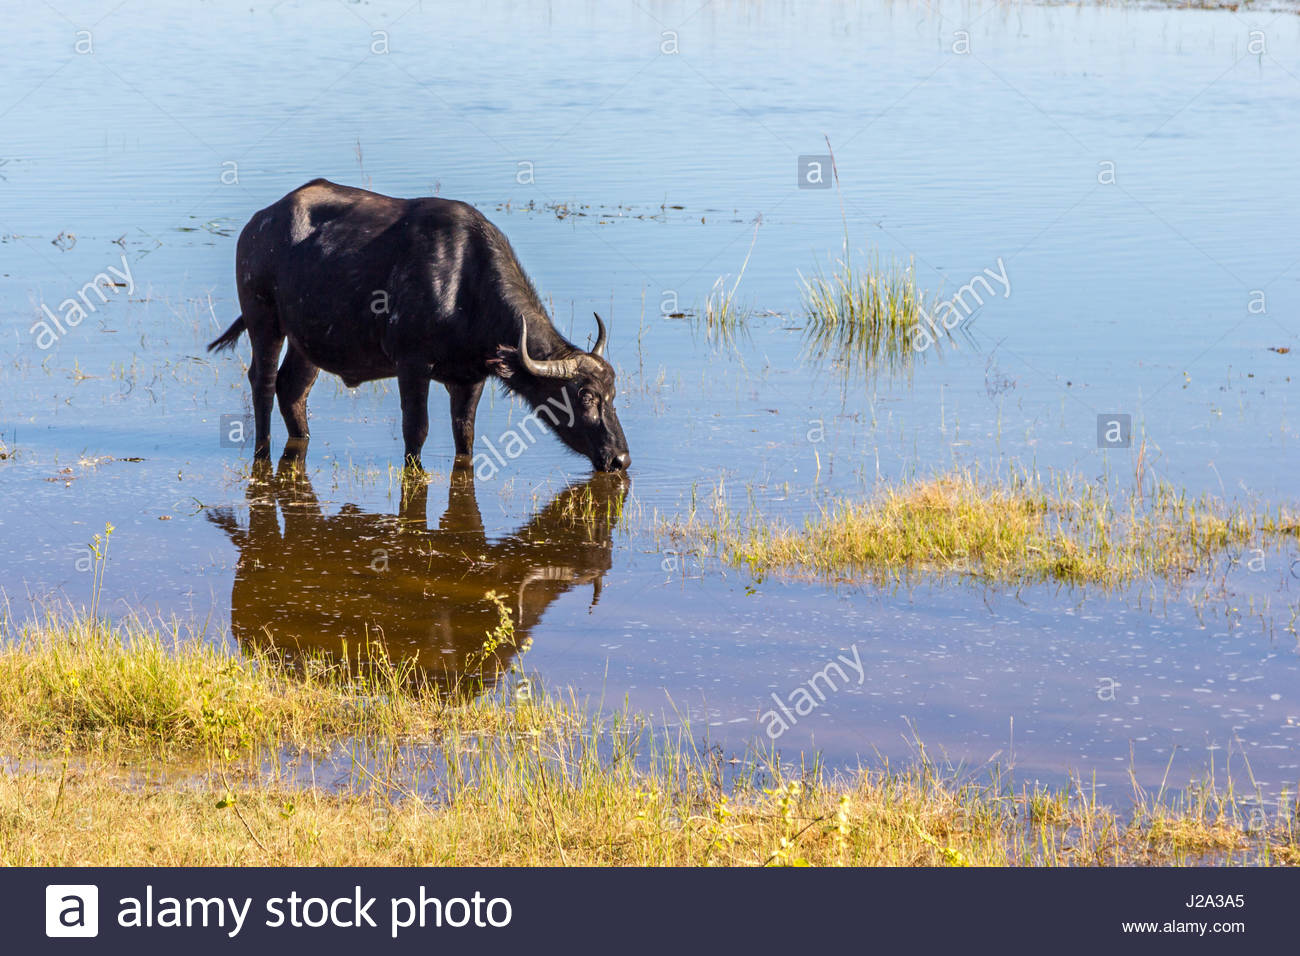 A female Buffalo reflected in still waters at the edge of the Chobe River in the Chobe National Park. Stock Photo